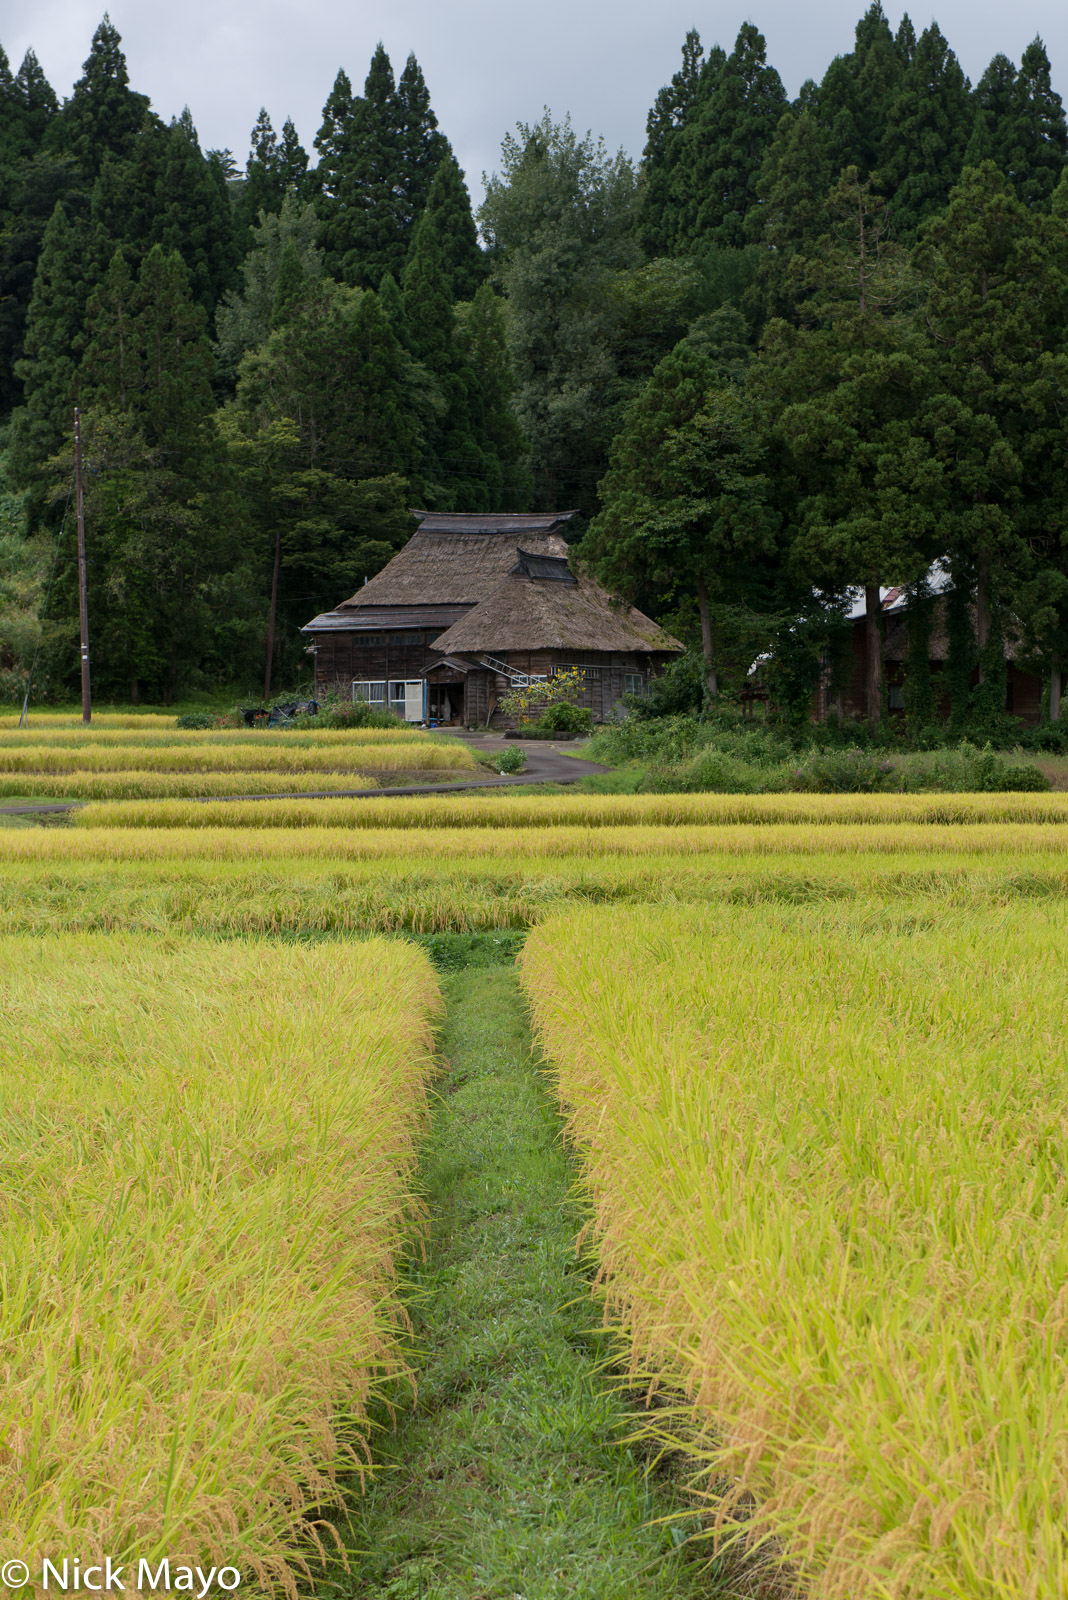 A thatched house facing the paddy rice fields at Oginoshima.